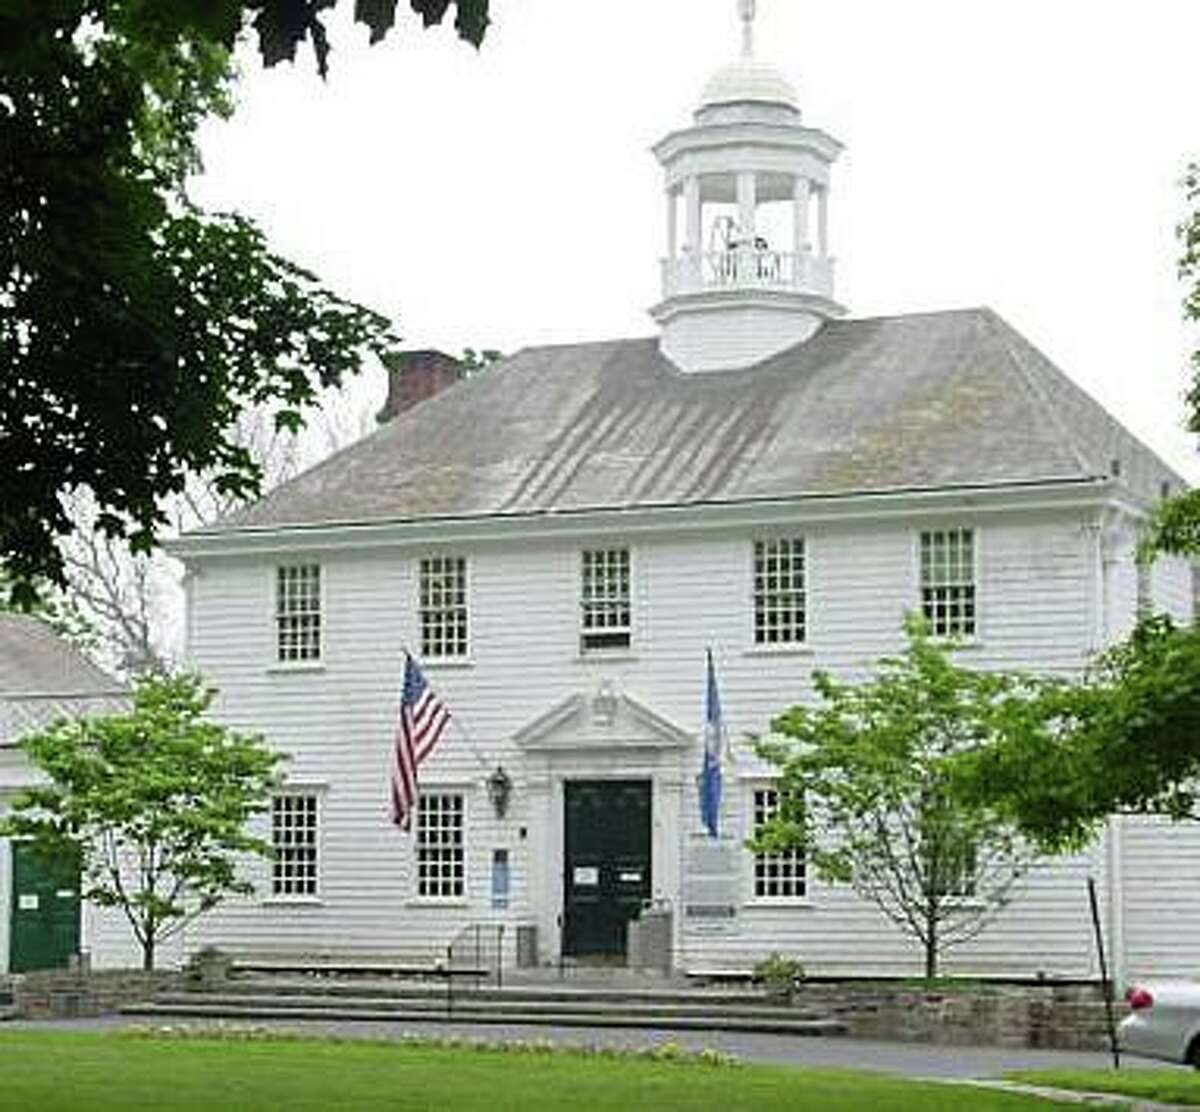 File Photo of Old Town Hall in Fairfield.